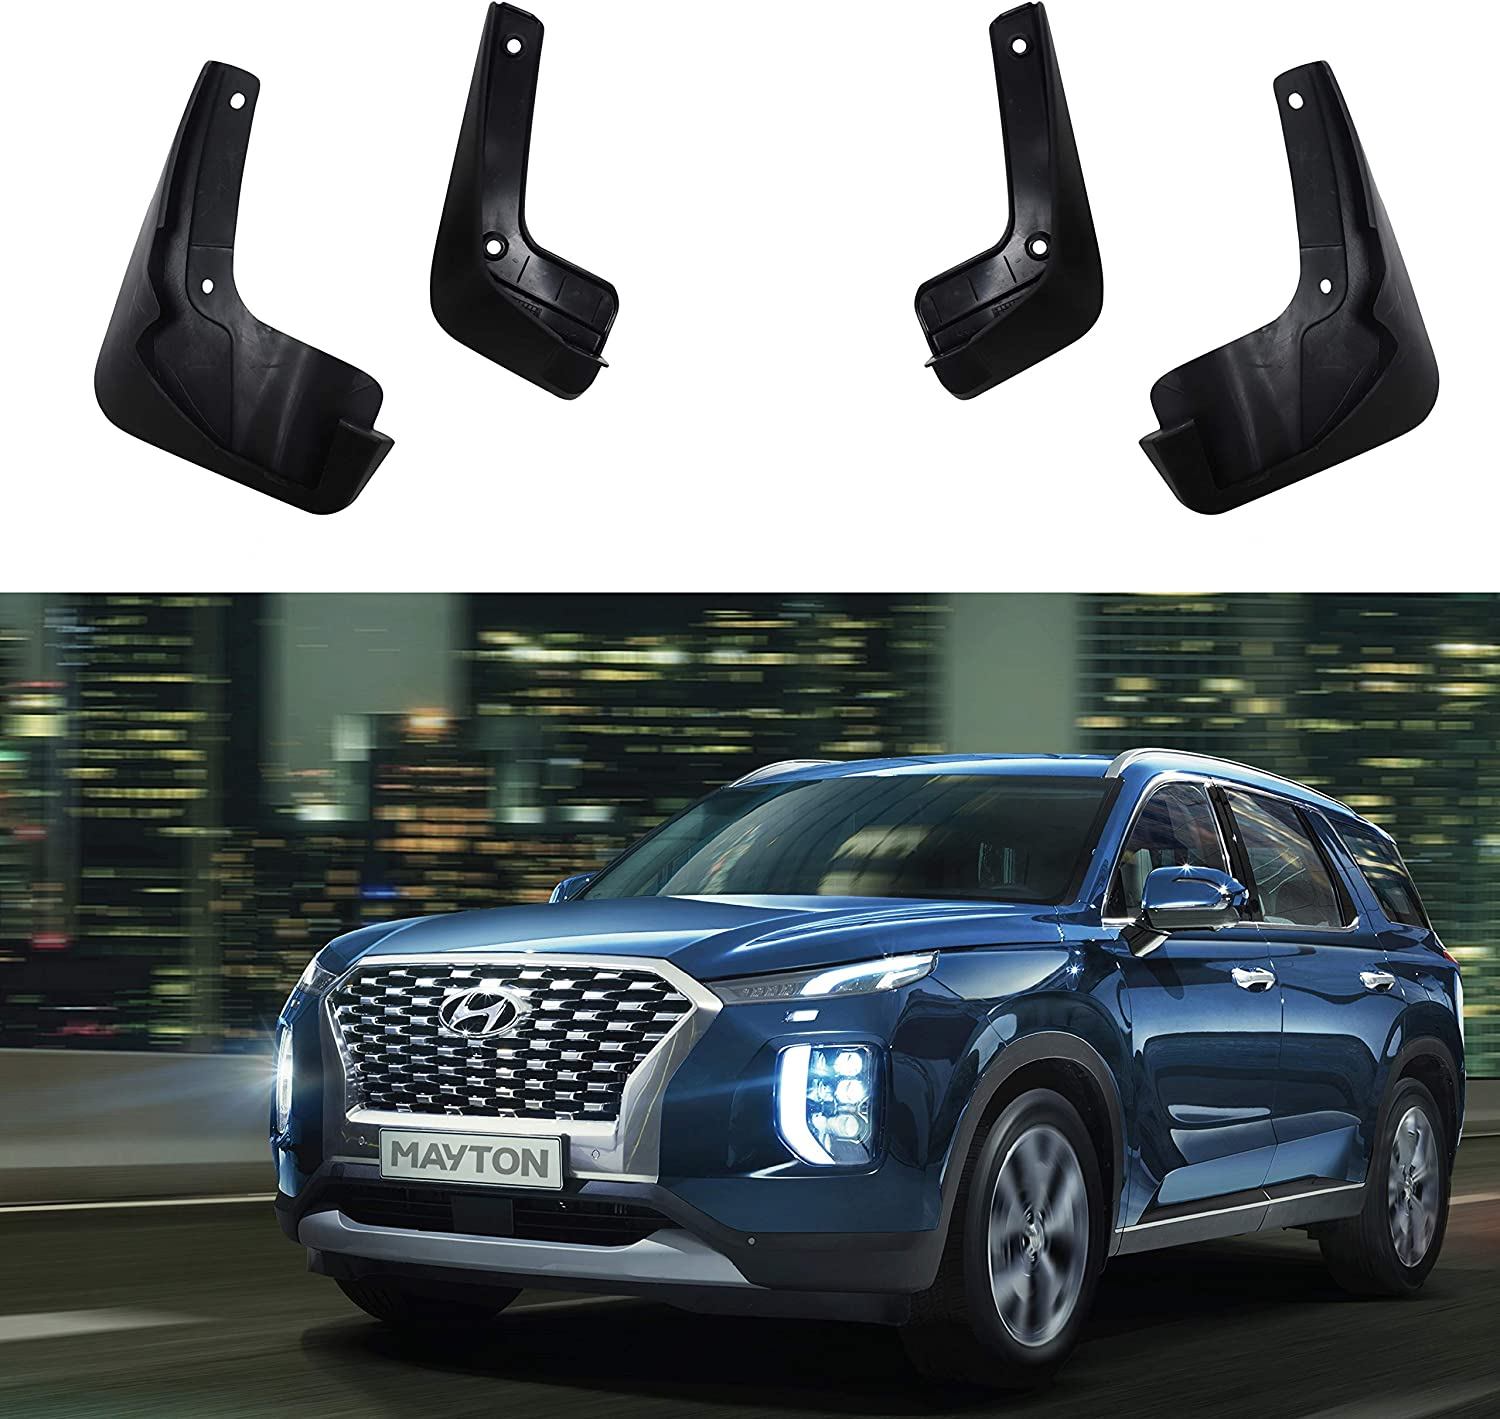 MAYTON Mudguard Mud Flaps Splash Guards Protectors 4PCS Set for Hyundai Palisade 2019-2020